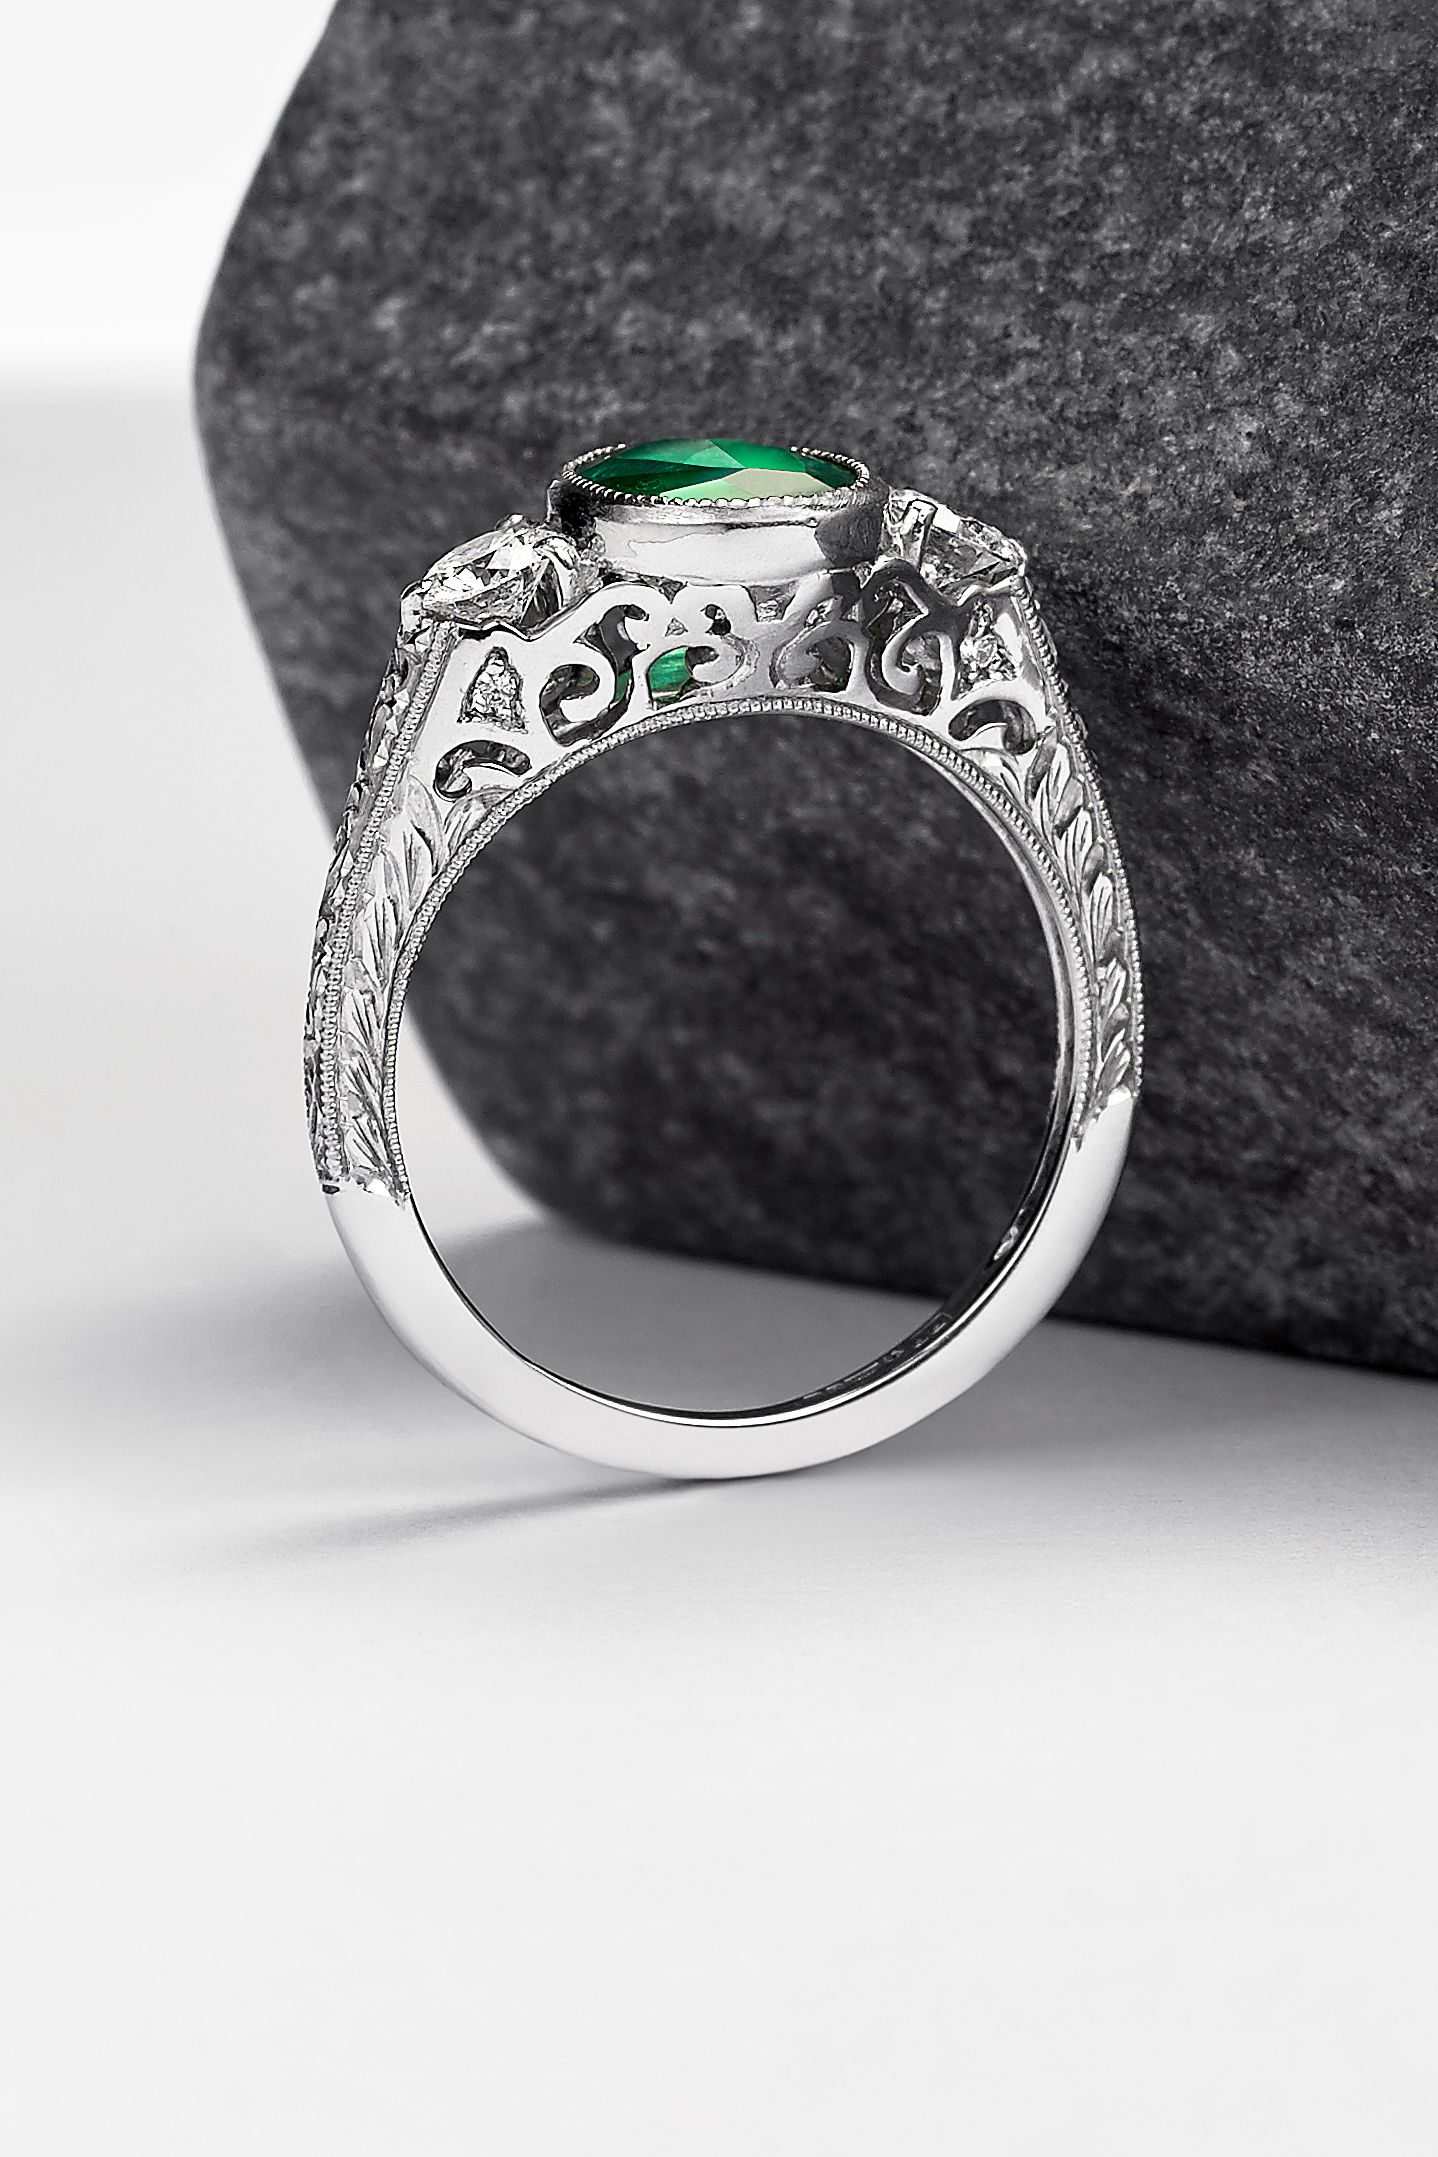 Create an engagement ring as unique as your love story Get